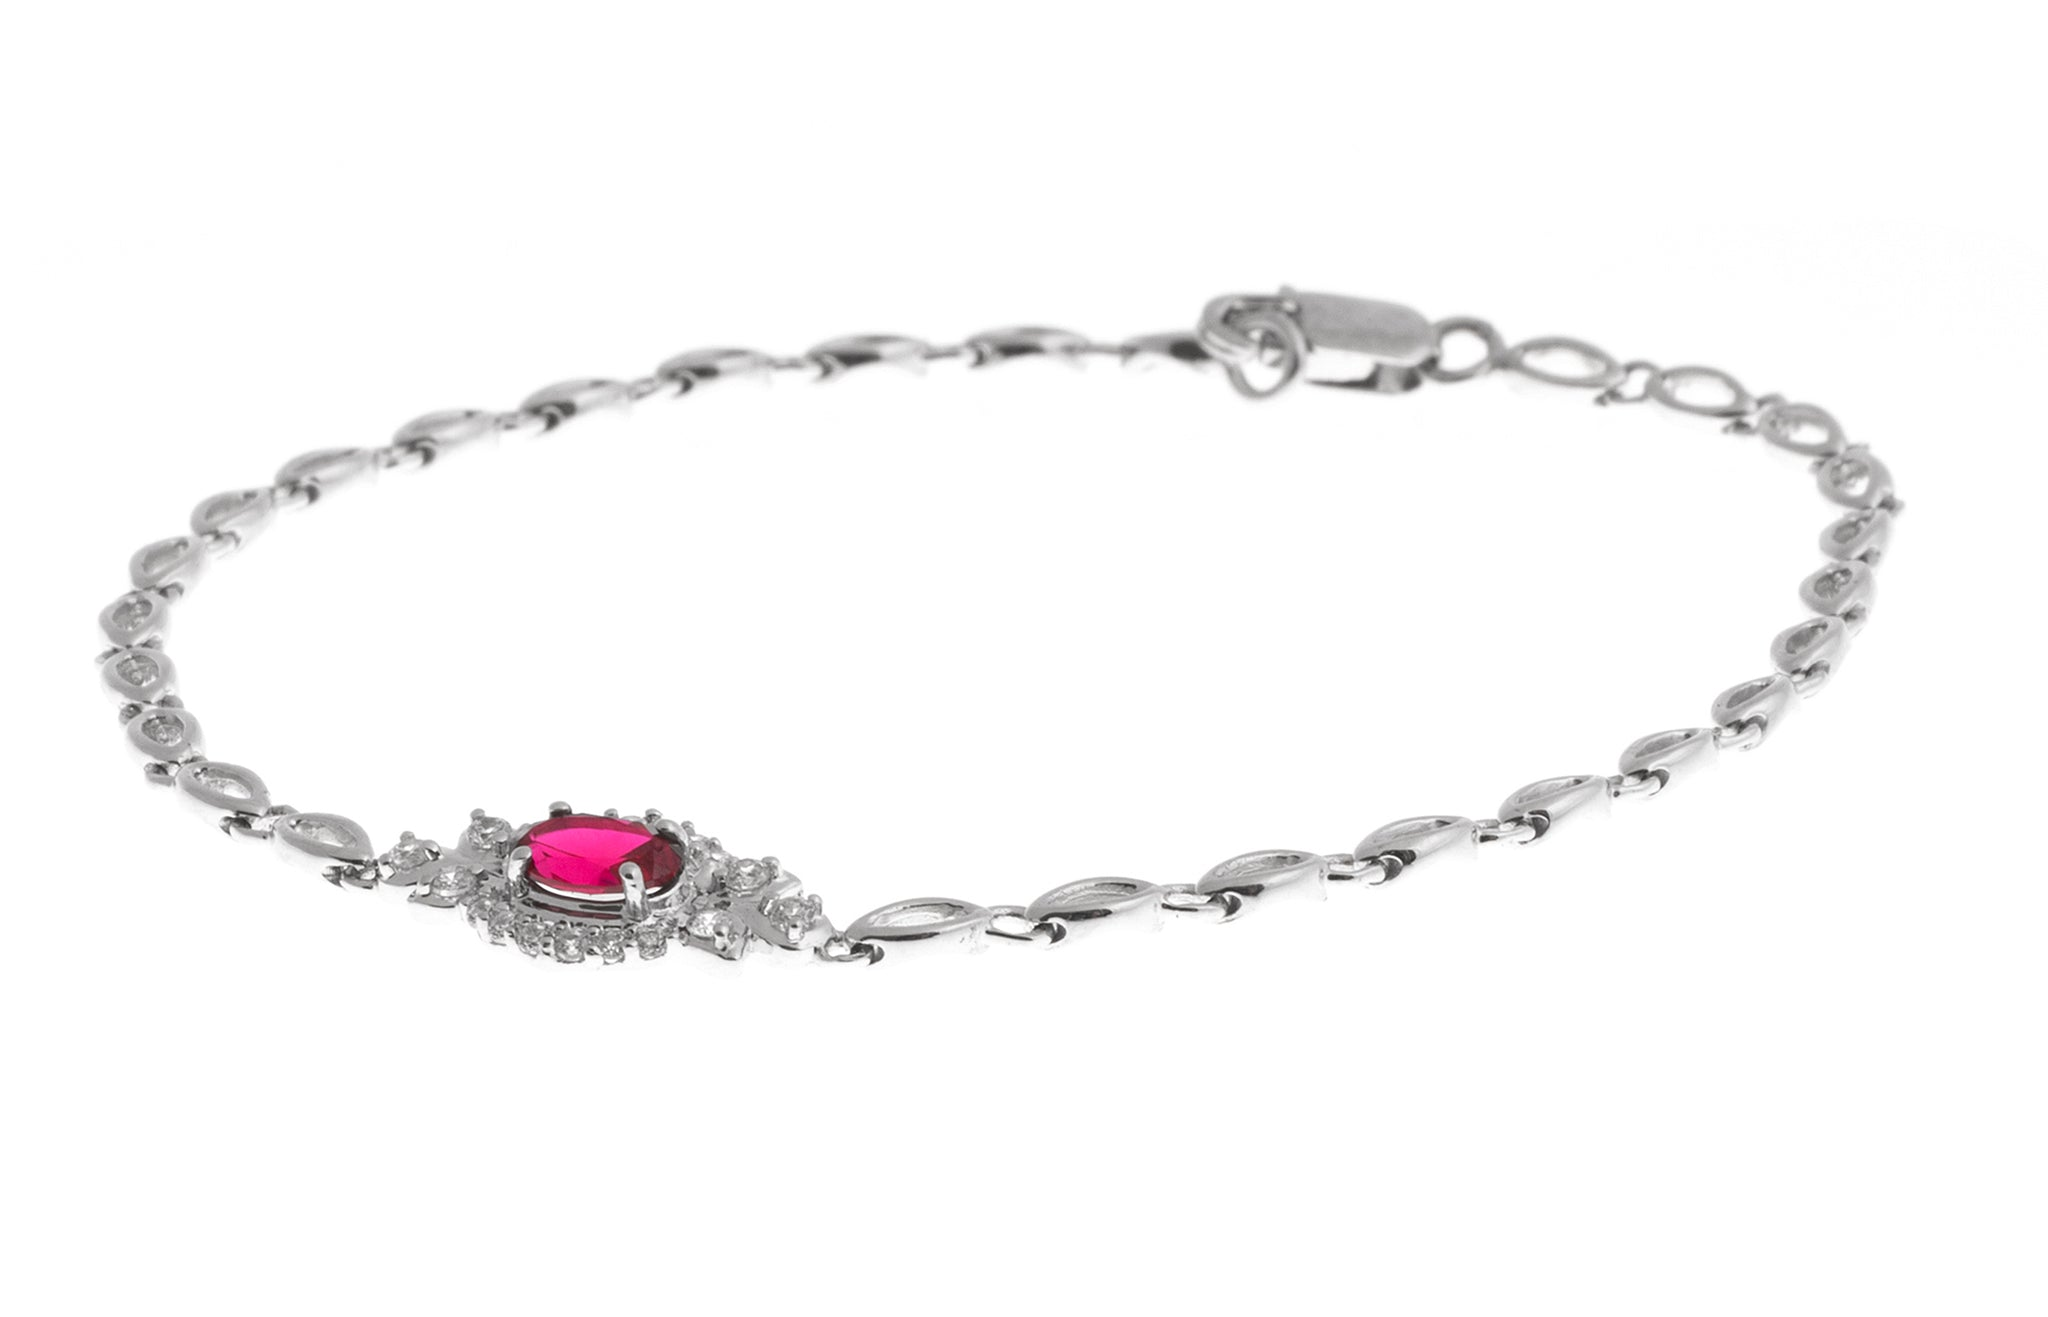 Stone Set 18ct White Gold Bracelet (5.5g) (LBR-1116)